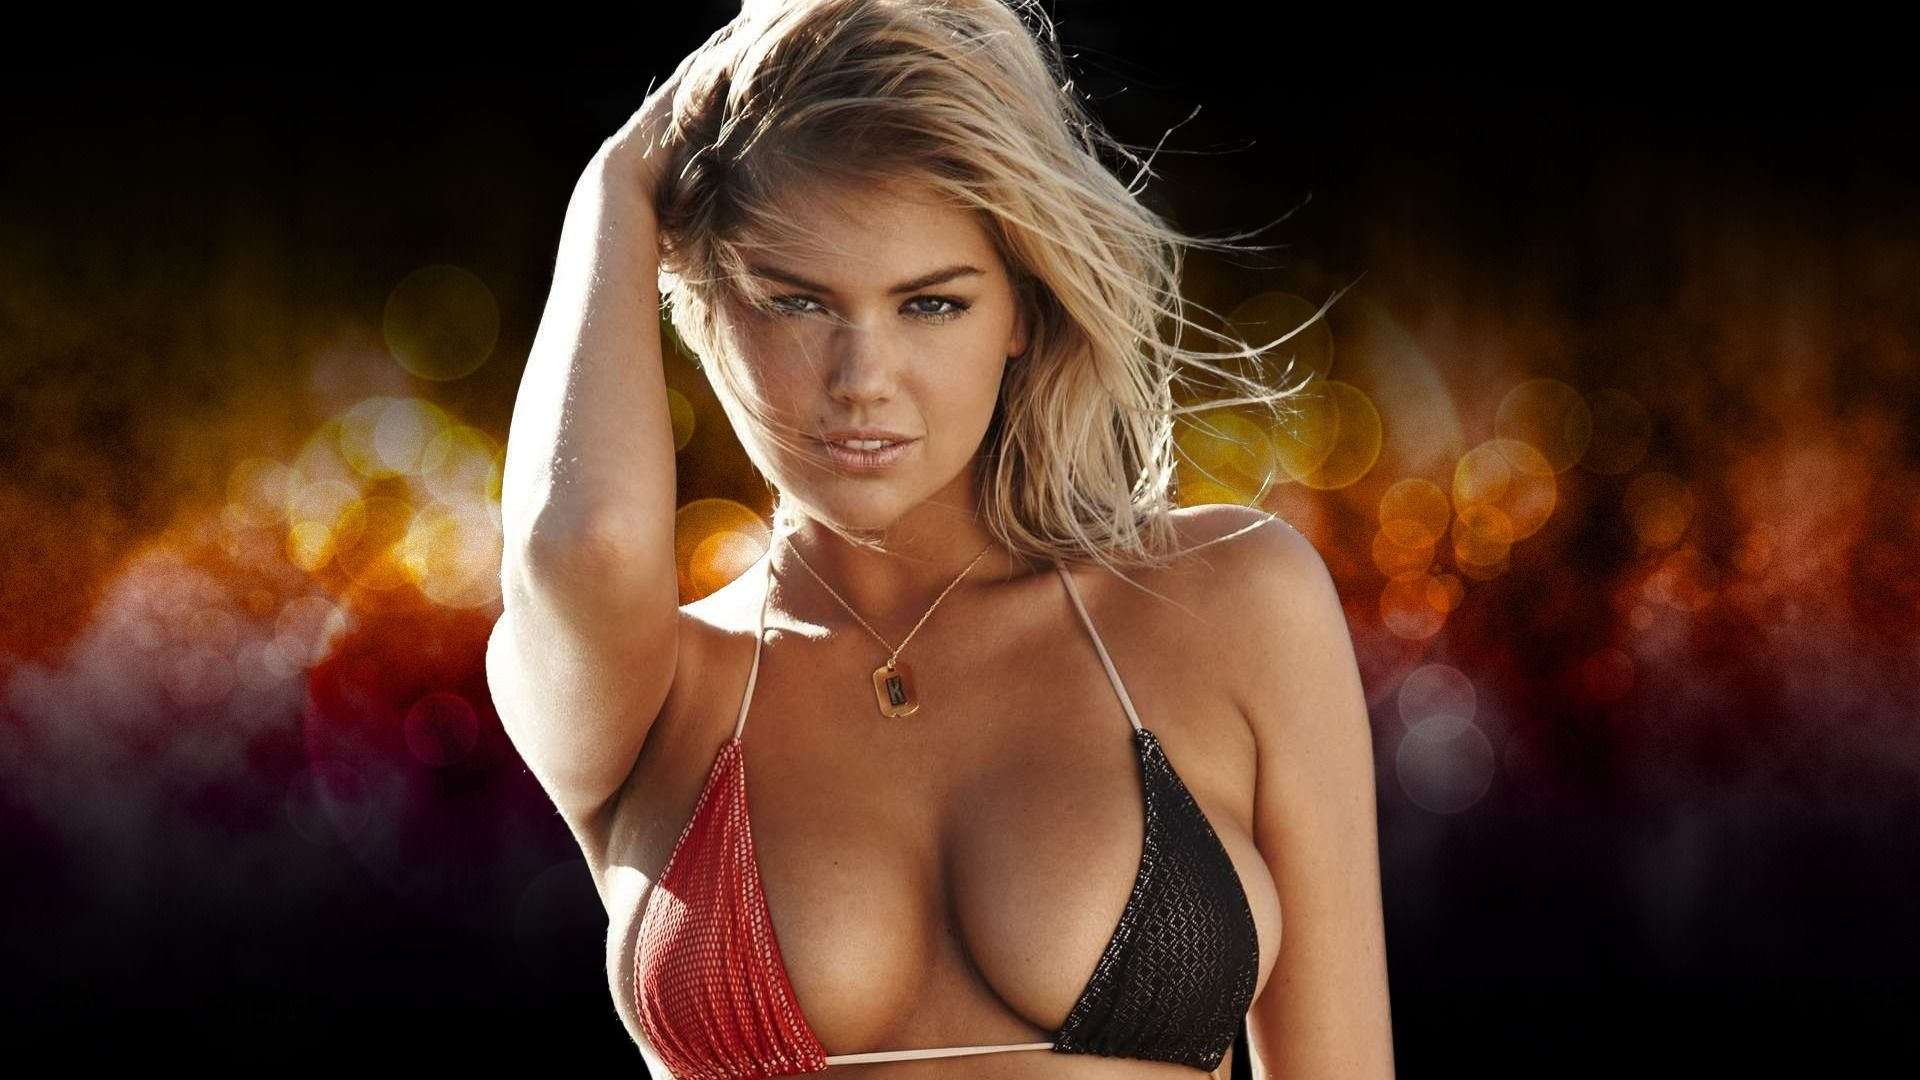 Kate upton latest hd wallpapers free download hd wallpapers kate upton latest hd wallpapers free download voltagebd Images